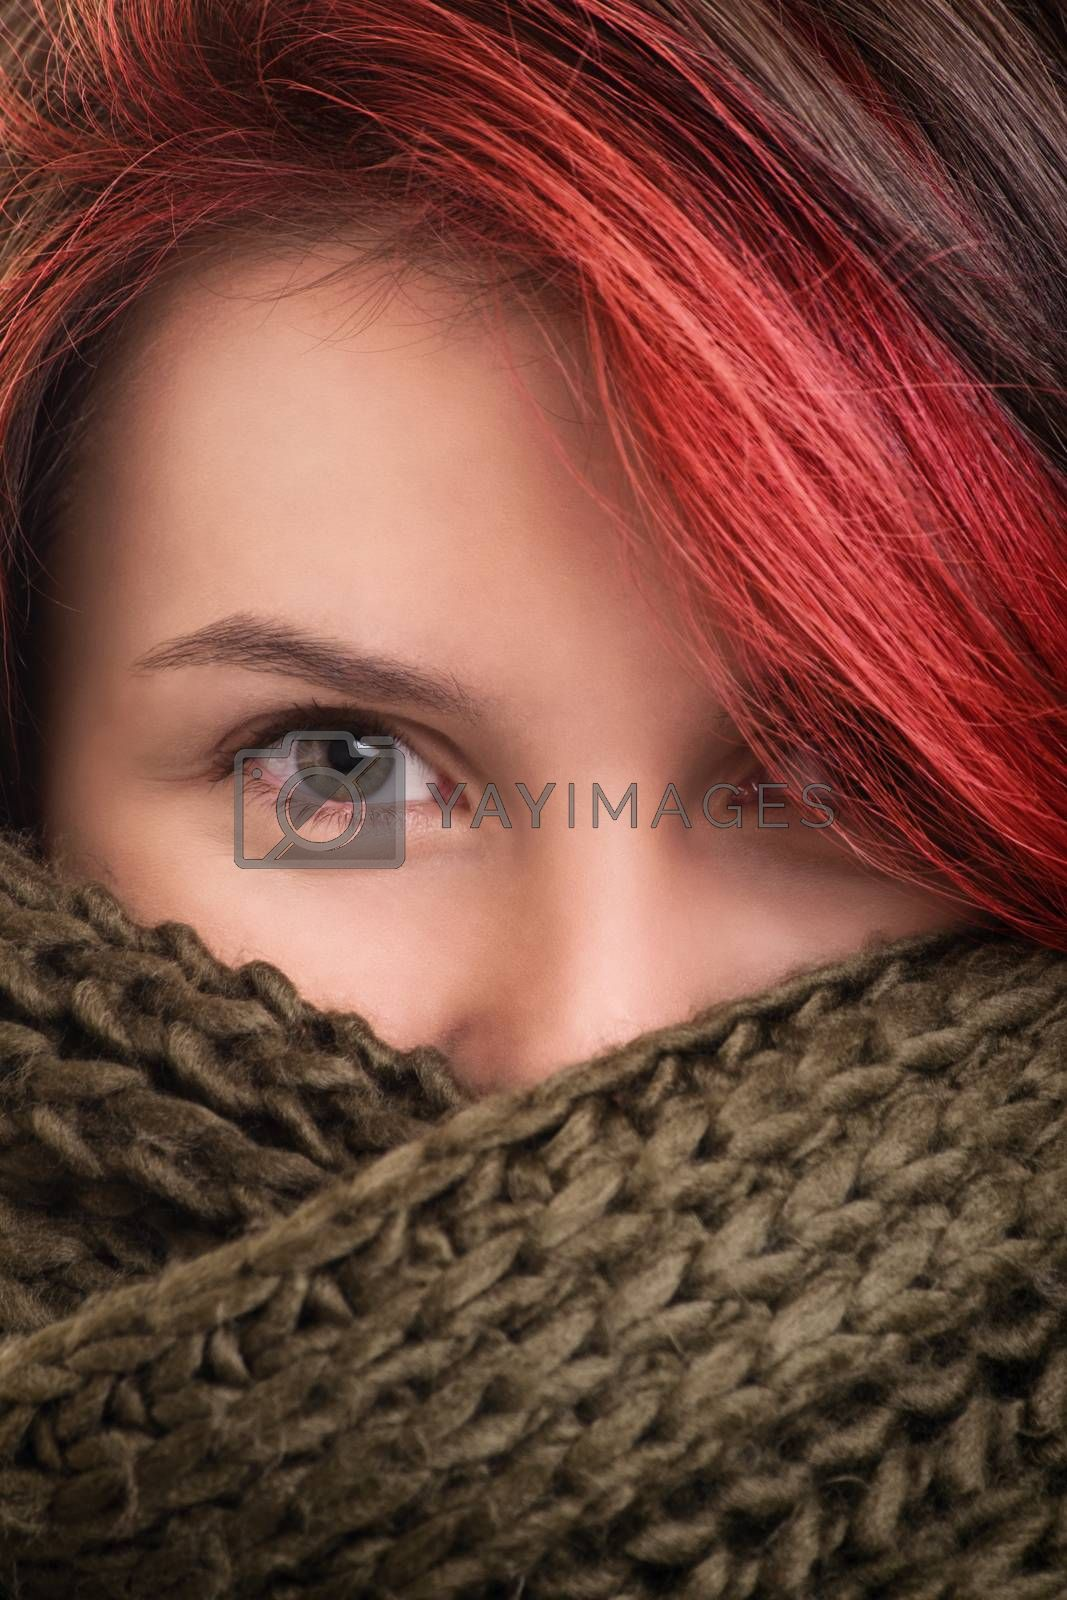 Under the comfort and softness of winter clothes. Close up shot of a beautiful young girl wrapped in a soft and comfy green woolen scarf.